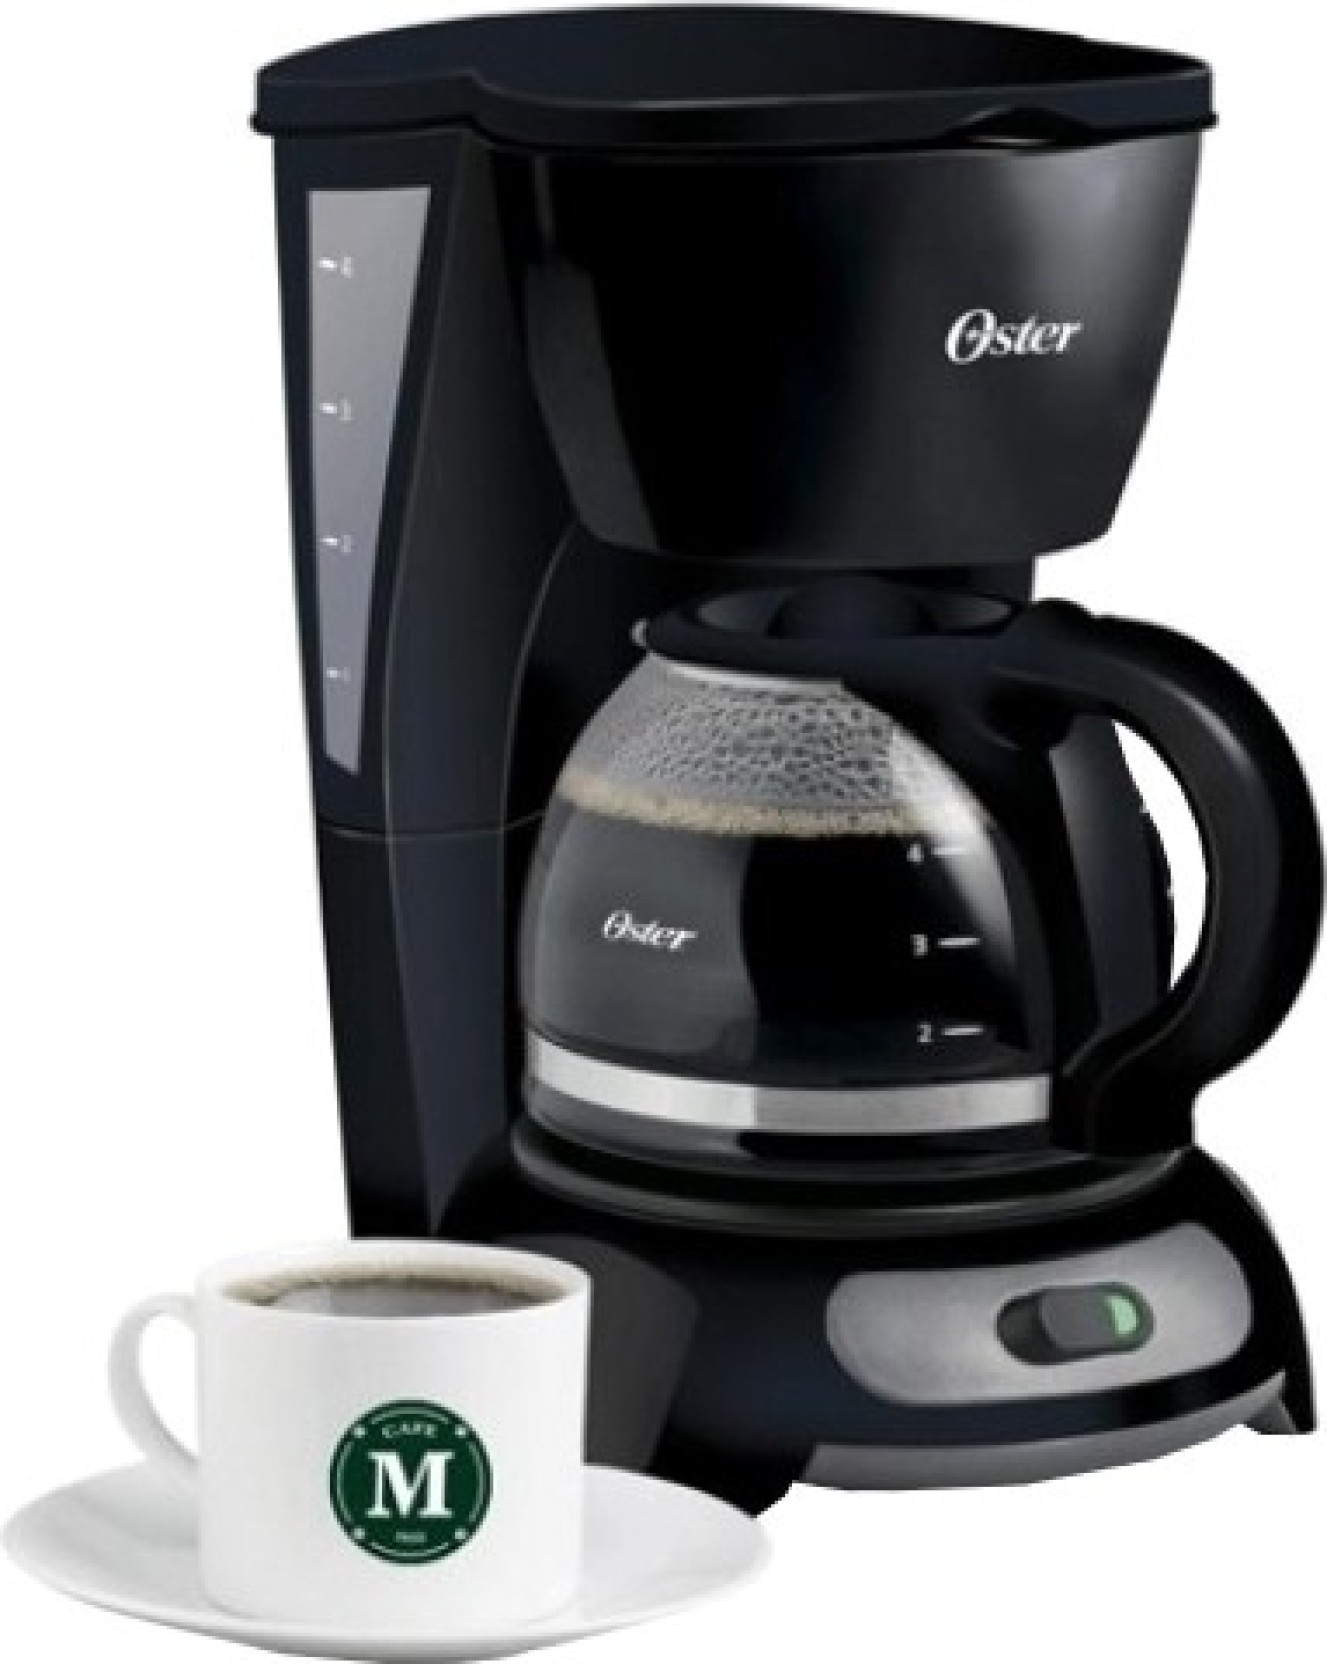 Filter Coffee Maker Flipkart : Oster 3301 4 Cups Coffee Maker Price in India - Buy Oster 3301 4 Cups Coffee Maker Online at ...